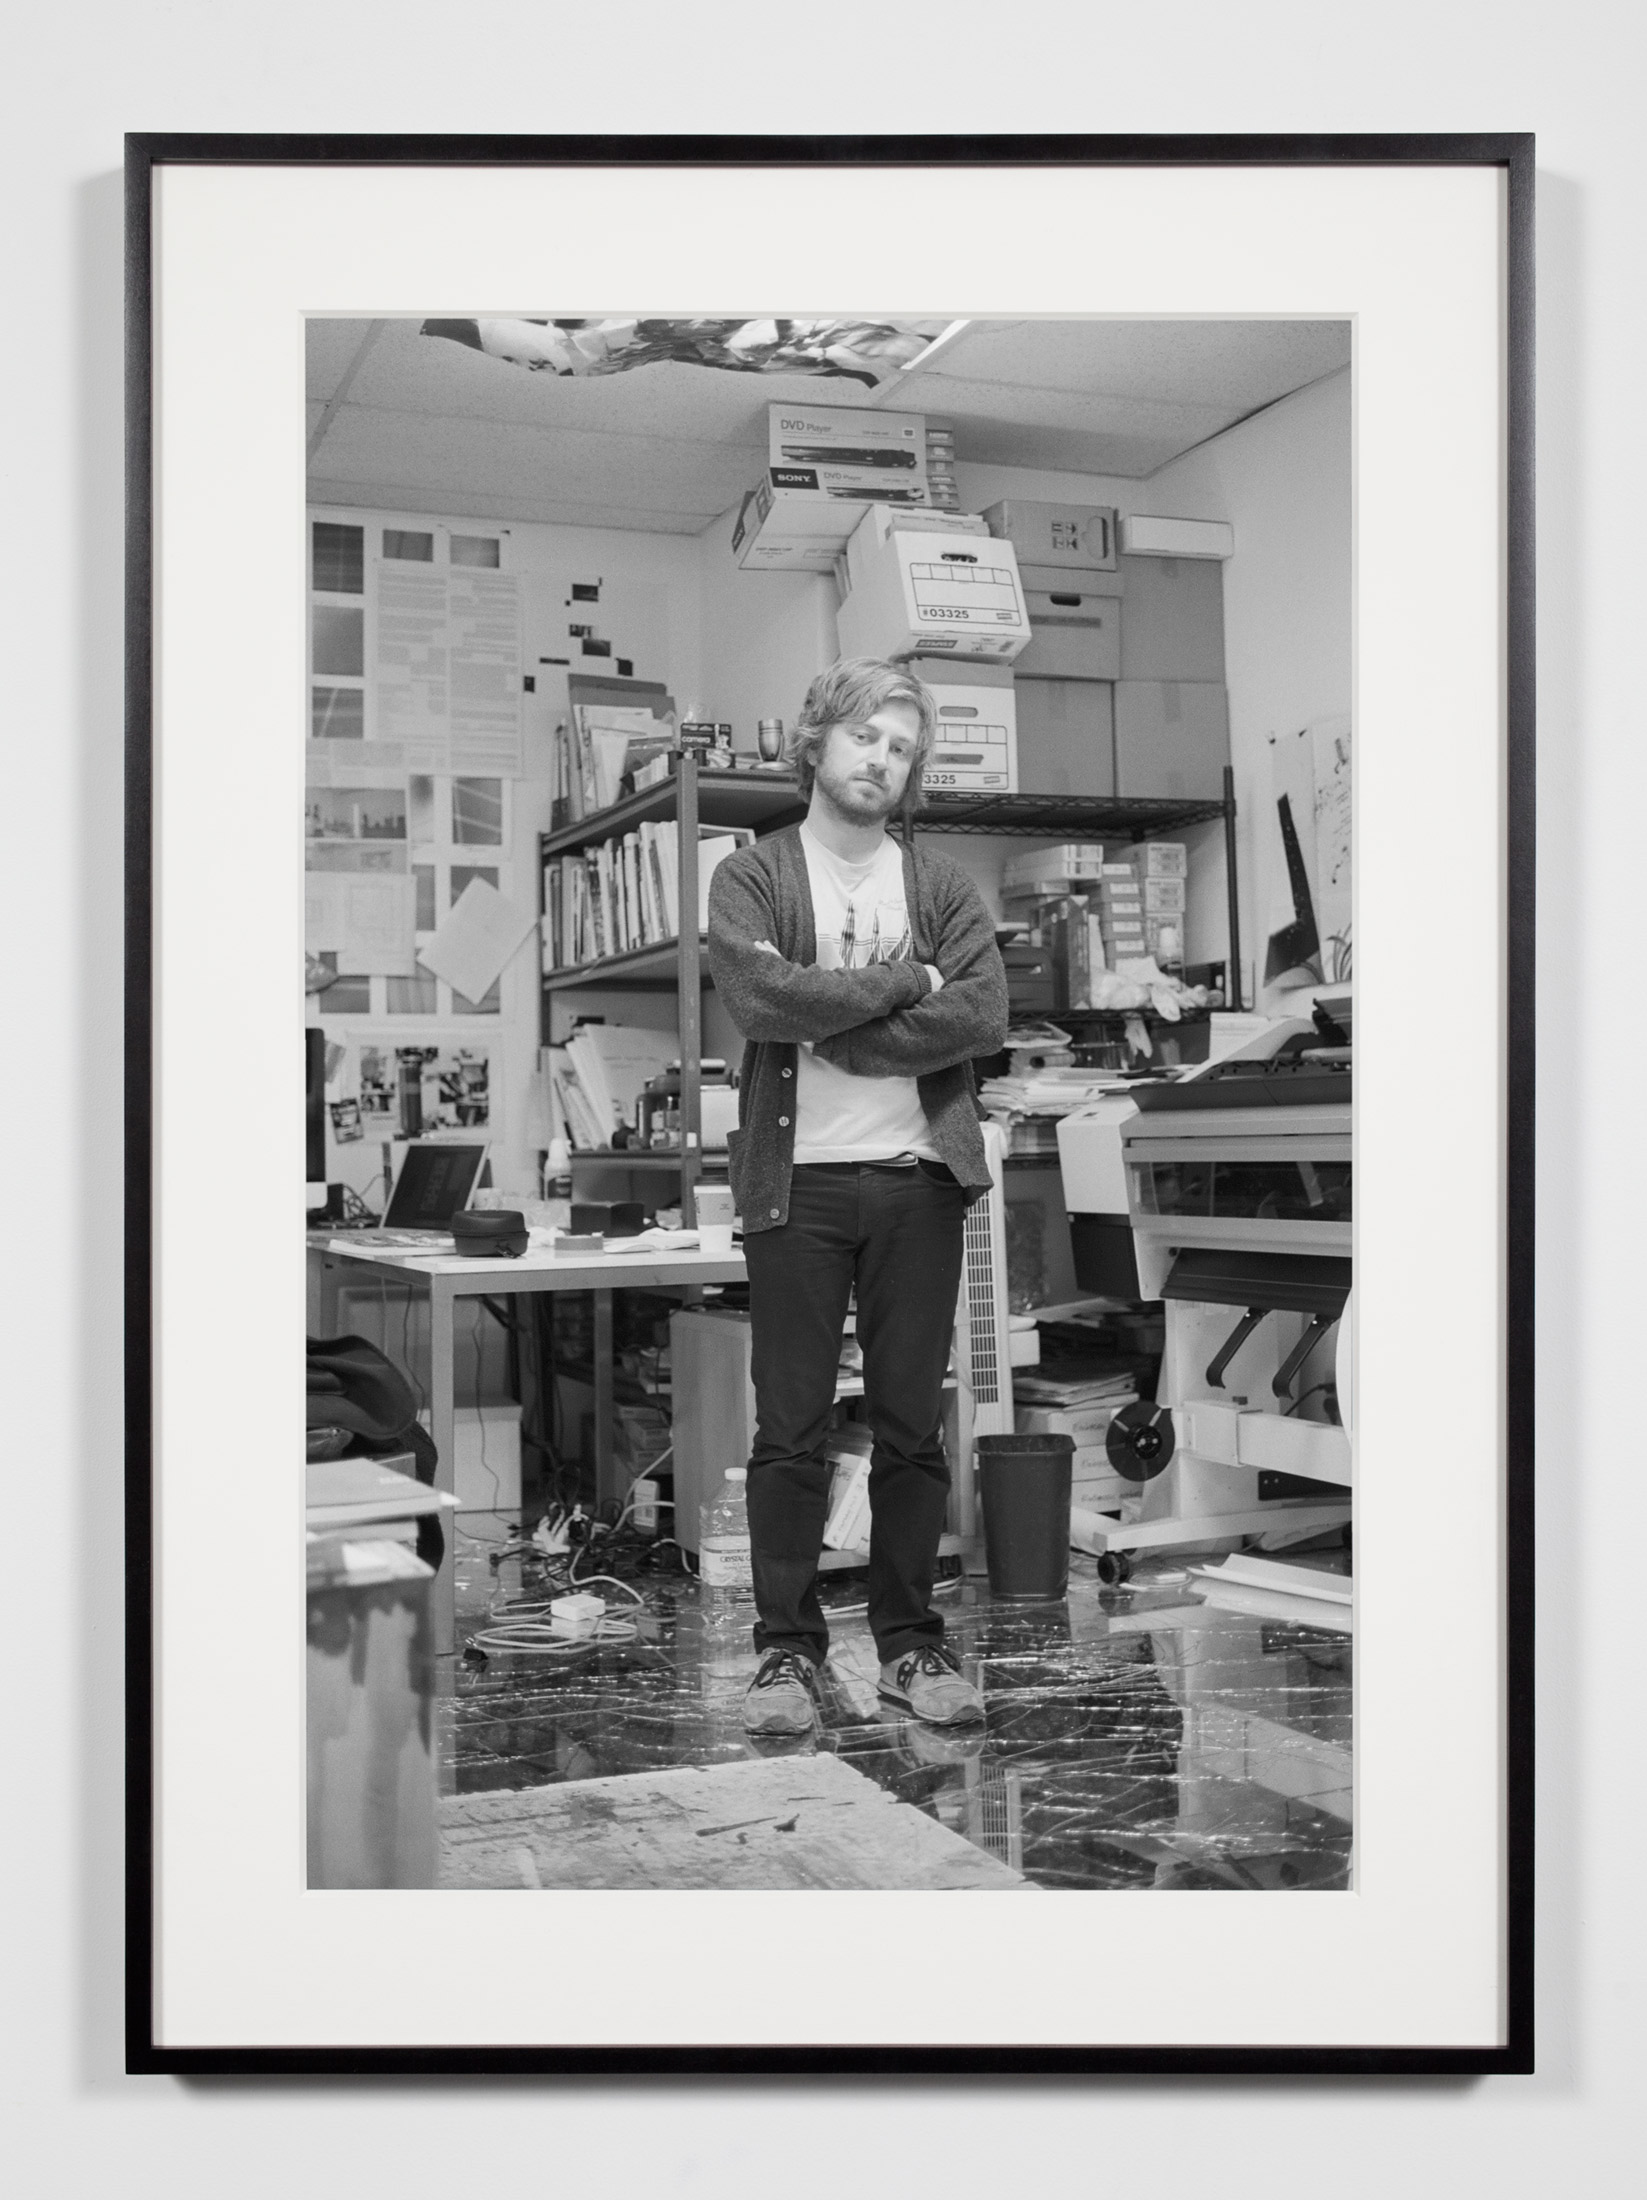 Studio Production Manager, Los Angeles, California, December 9, 2010    2011   Epson Ultrachrome K3 archival ink jet print on Hahnemühle Photo Rag paper  36 3/8 x 26 3/8 inches   Industrial Portraits, 2008–